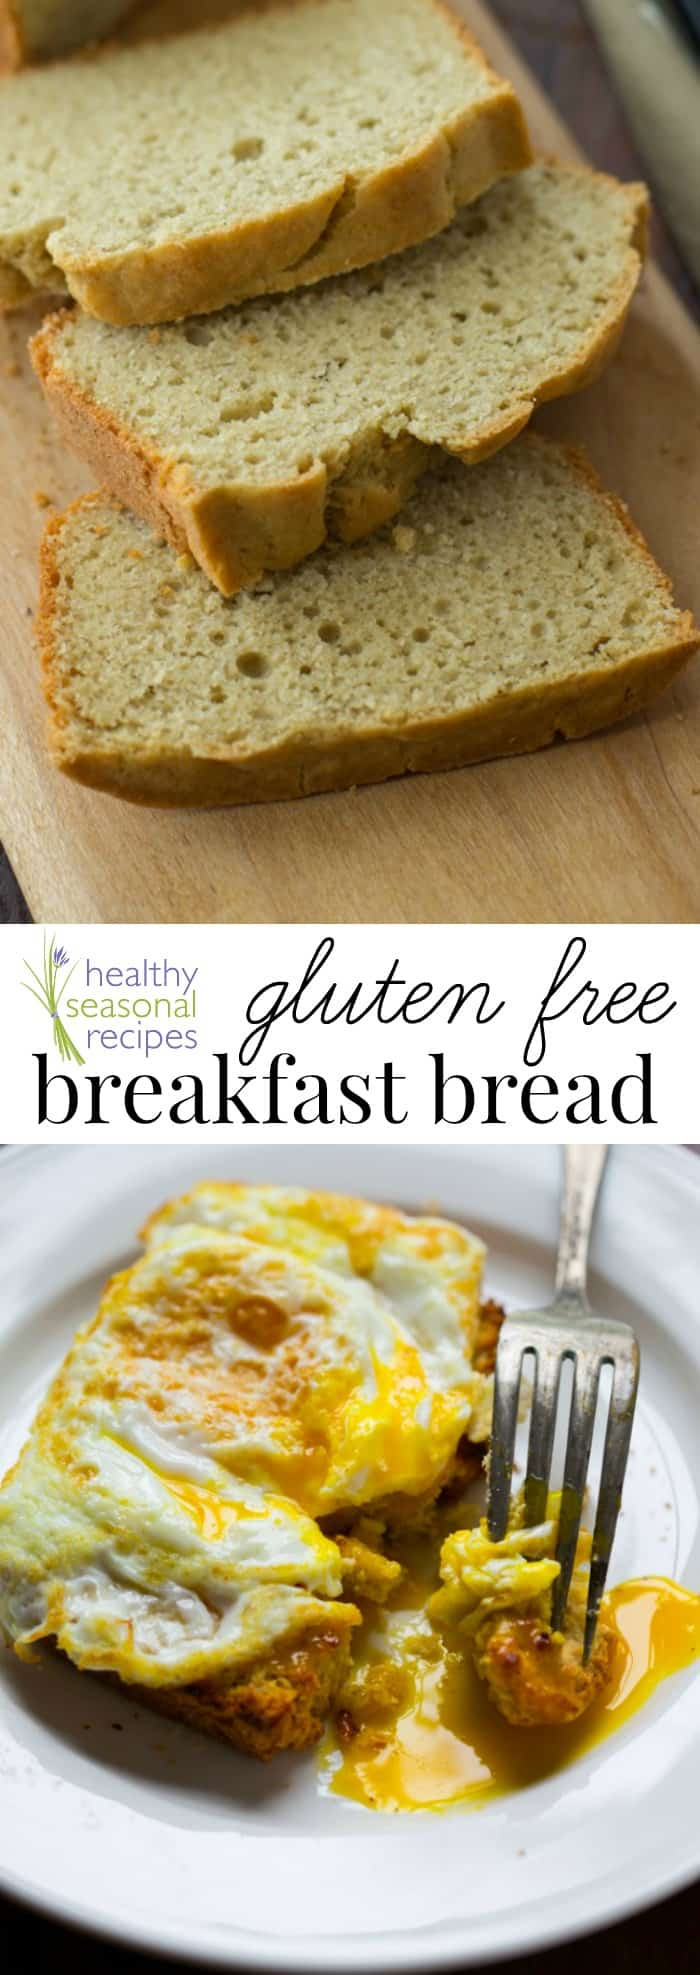 Healthy Gluten Free Bread  gluten free breakfast bread Healthy Seasonal Recipes